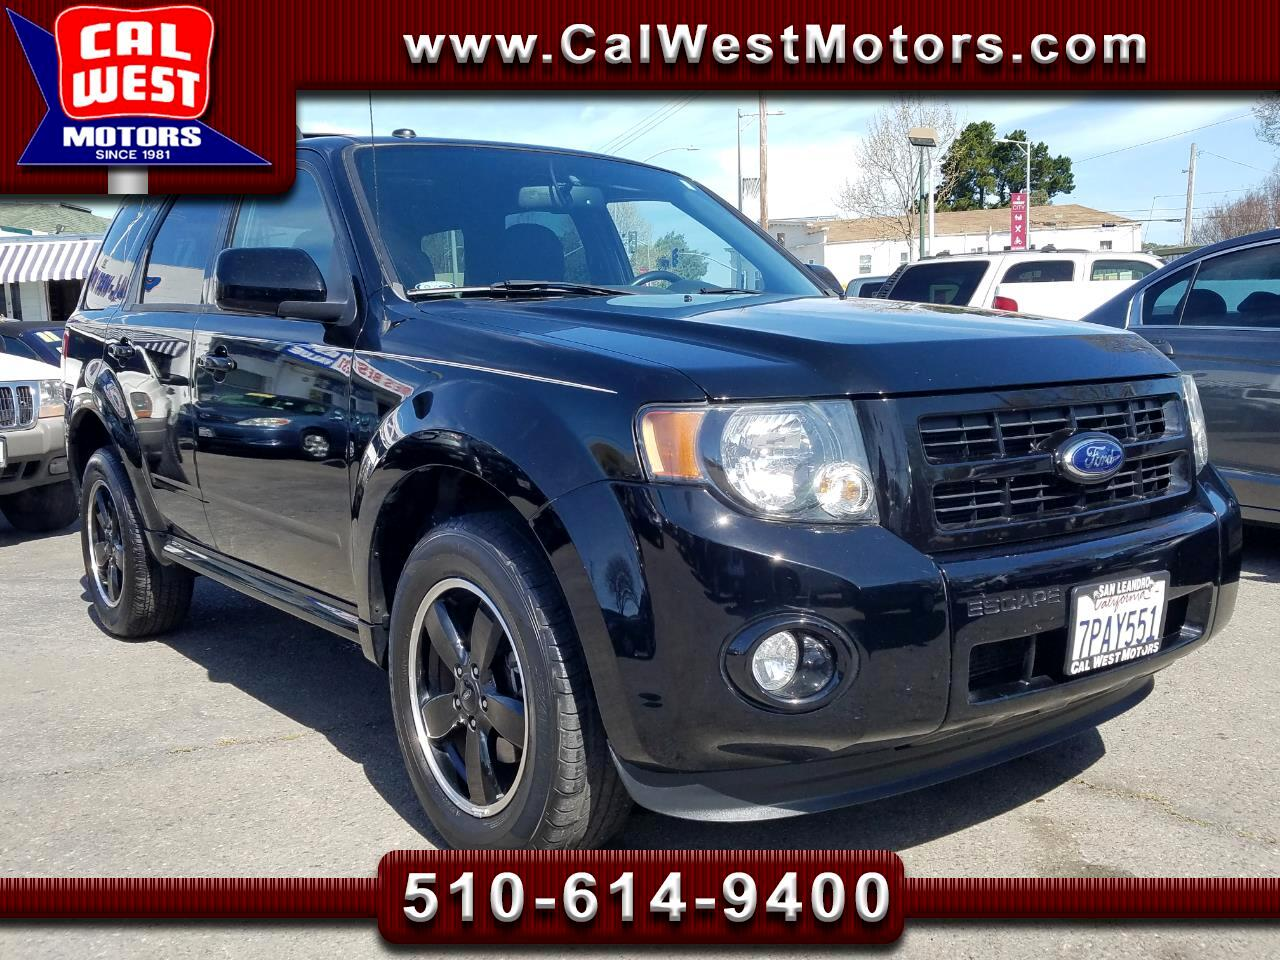 2012 Ford Escape SUV 5D SYNC MnRoof LowMiles VeryClean ExMtnce